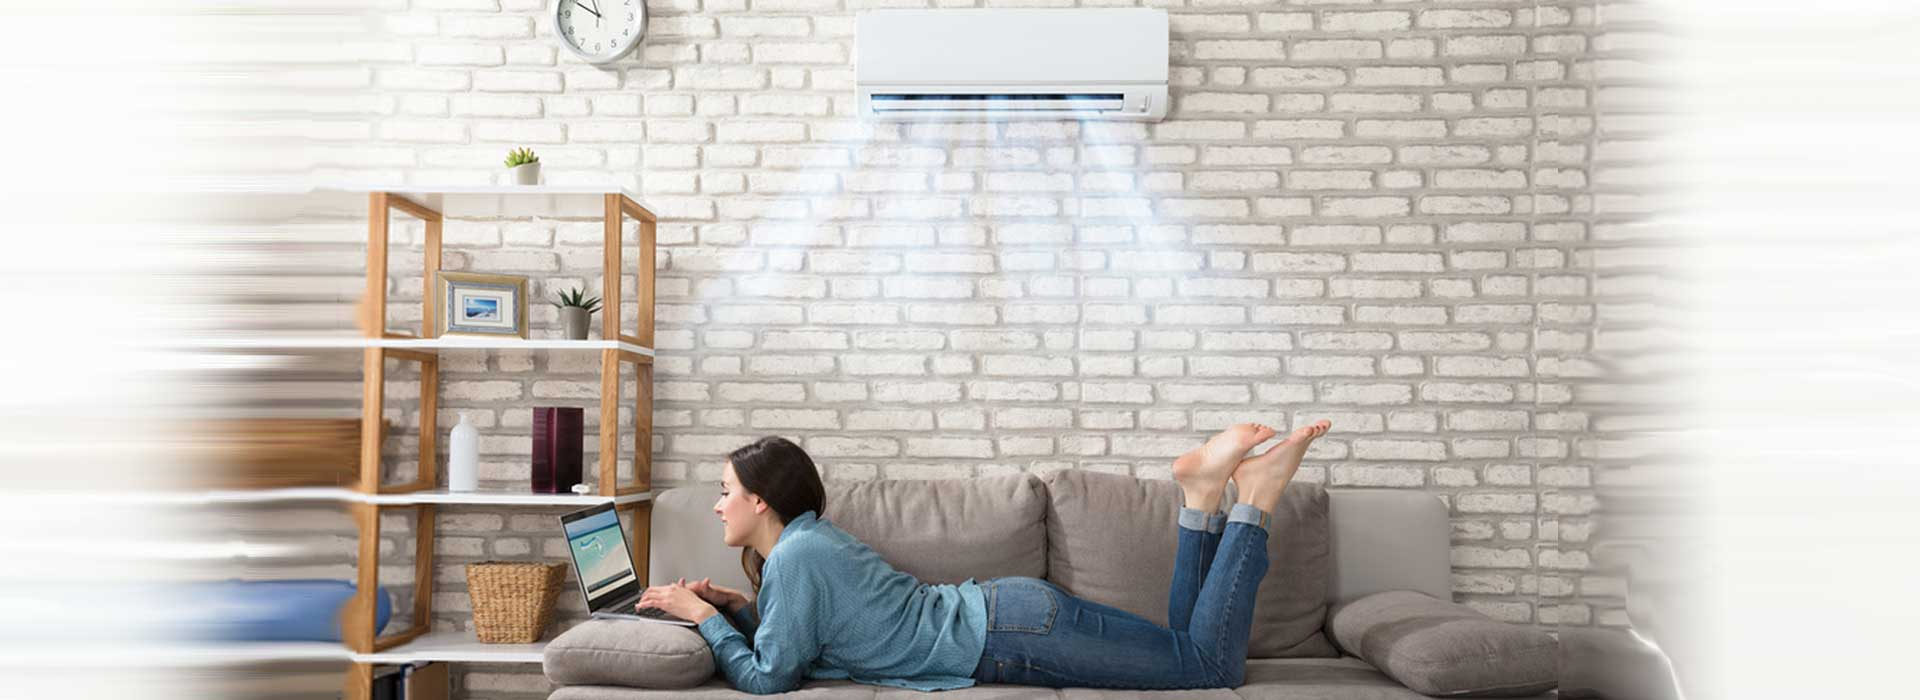 Toronto ductless air conditioning